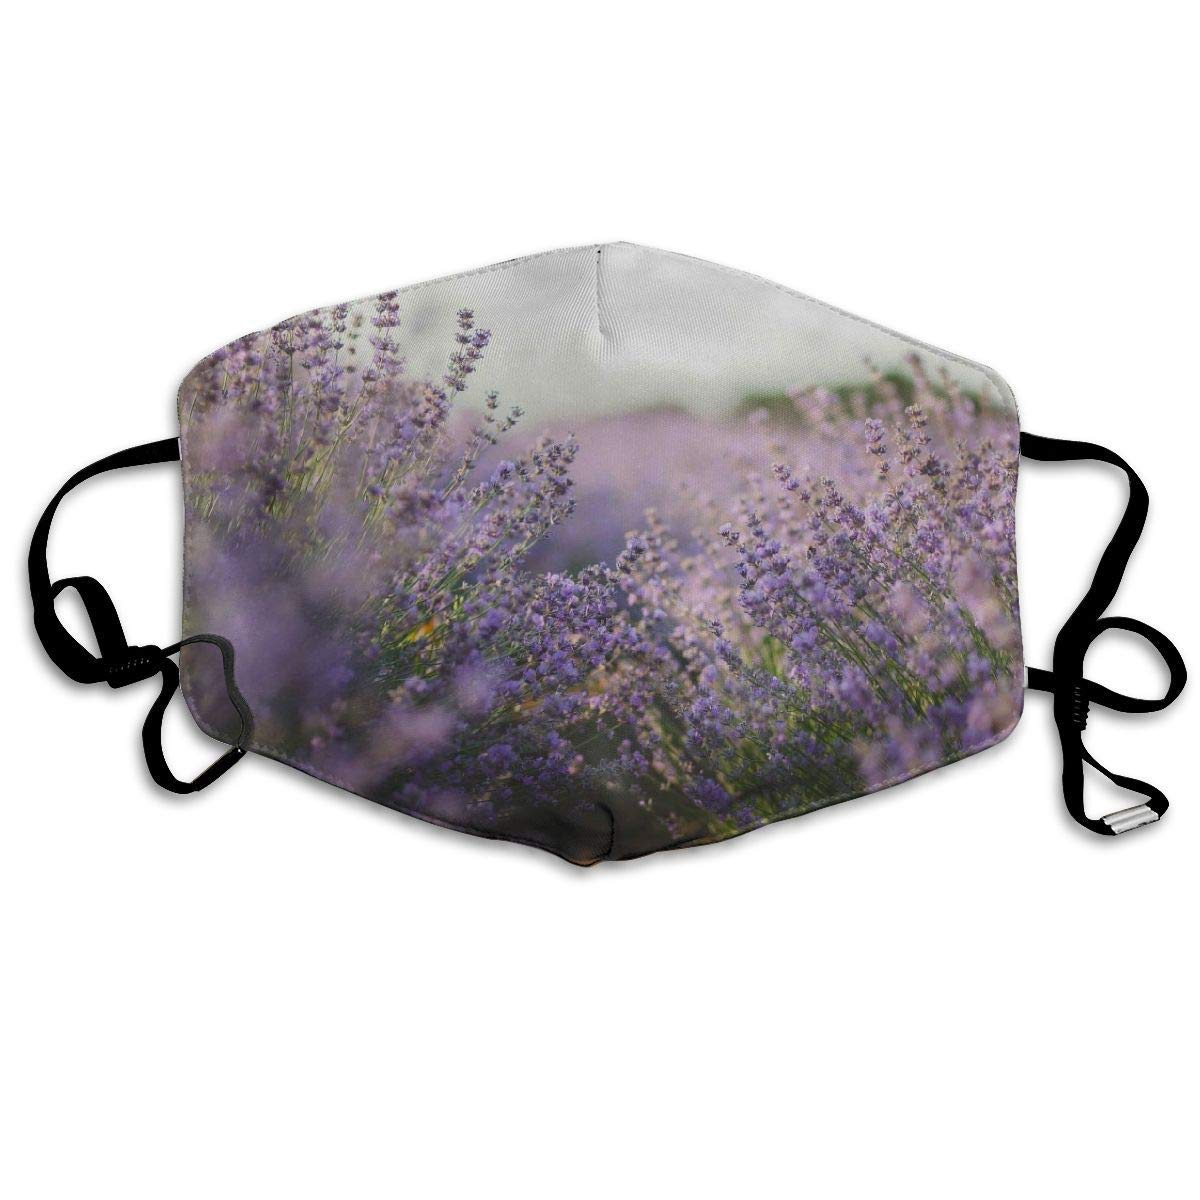 Bdwuhs Mascarillas Bucales,Boca Máscara Dust Mask for Women and Men Violet Lilac Lavender Printed Foldable Mask Face Mask Anti-Dust Mouth Mask